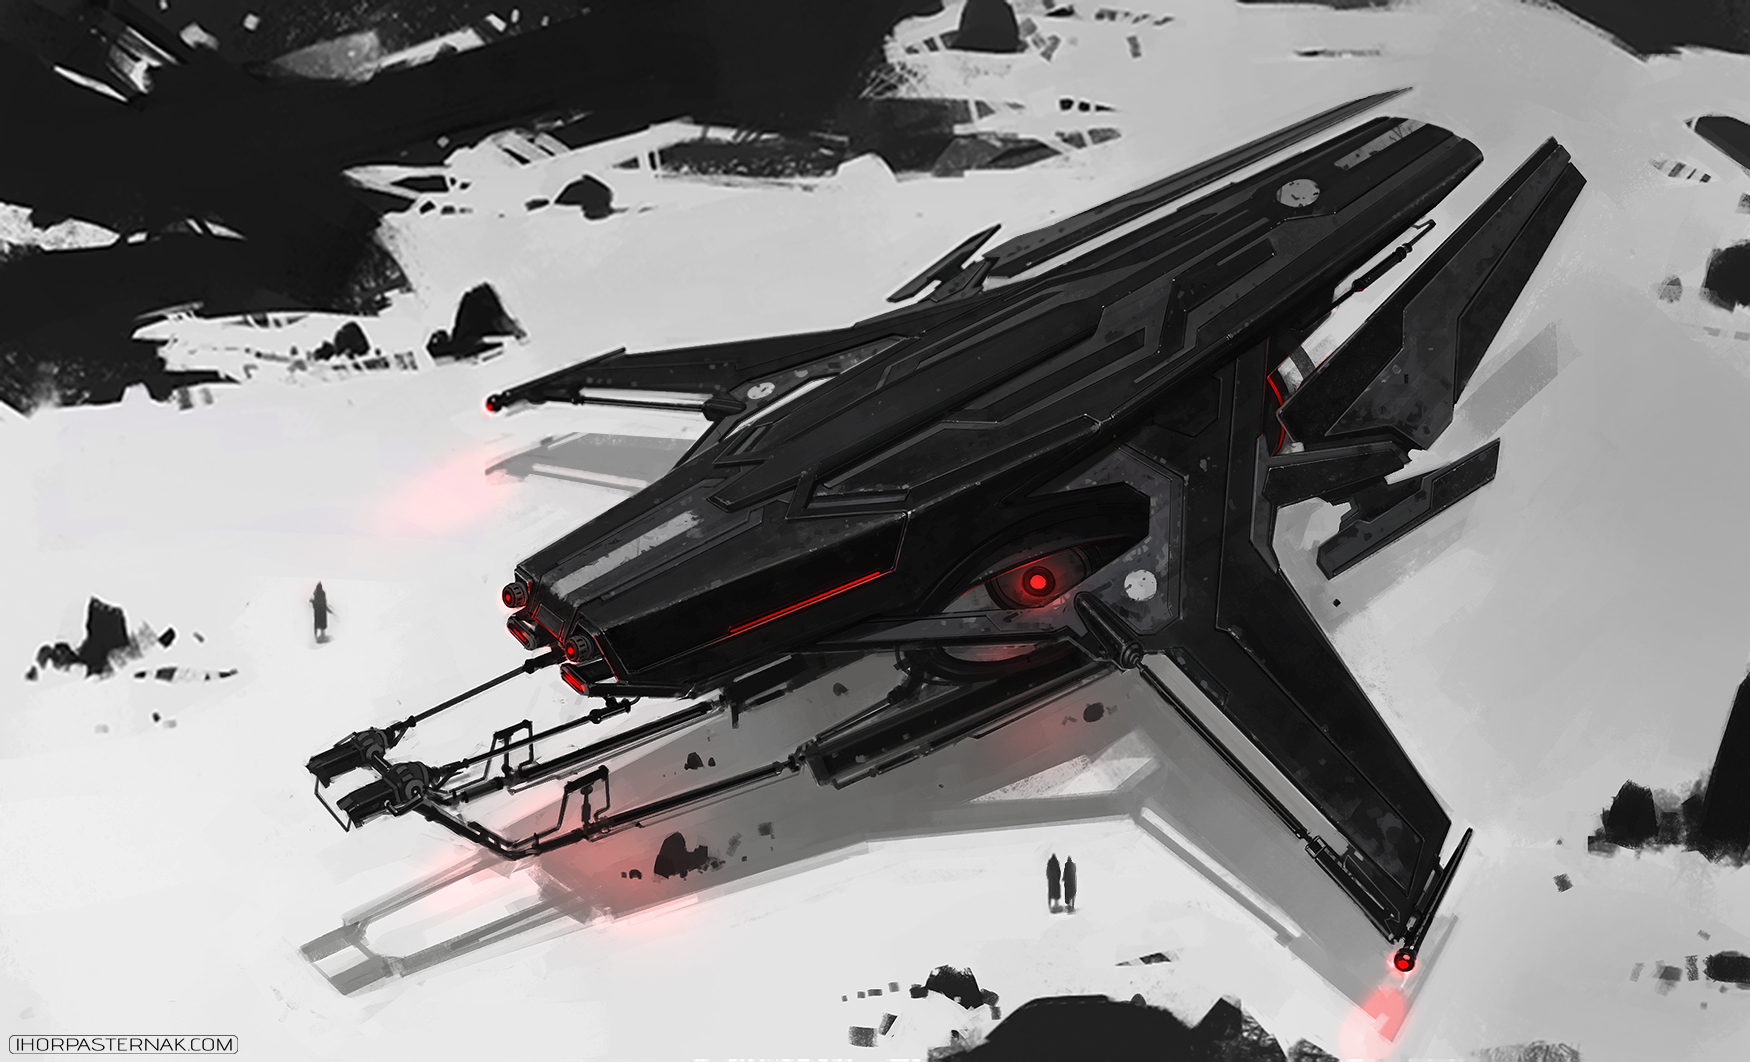 SPECTER S - 7 by Caisne